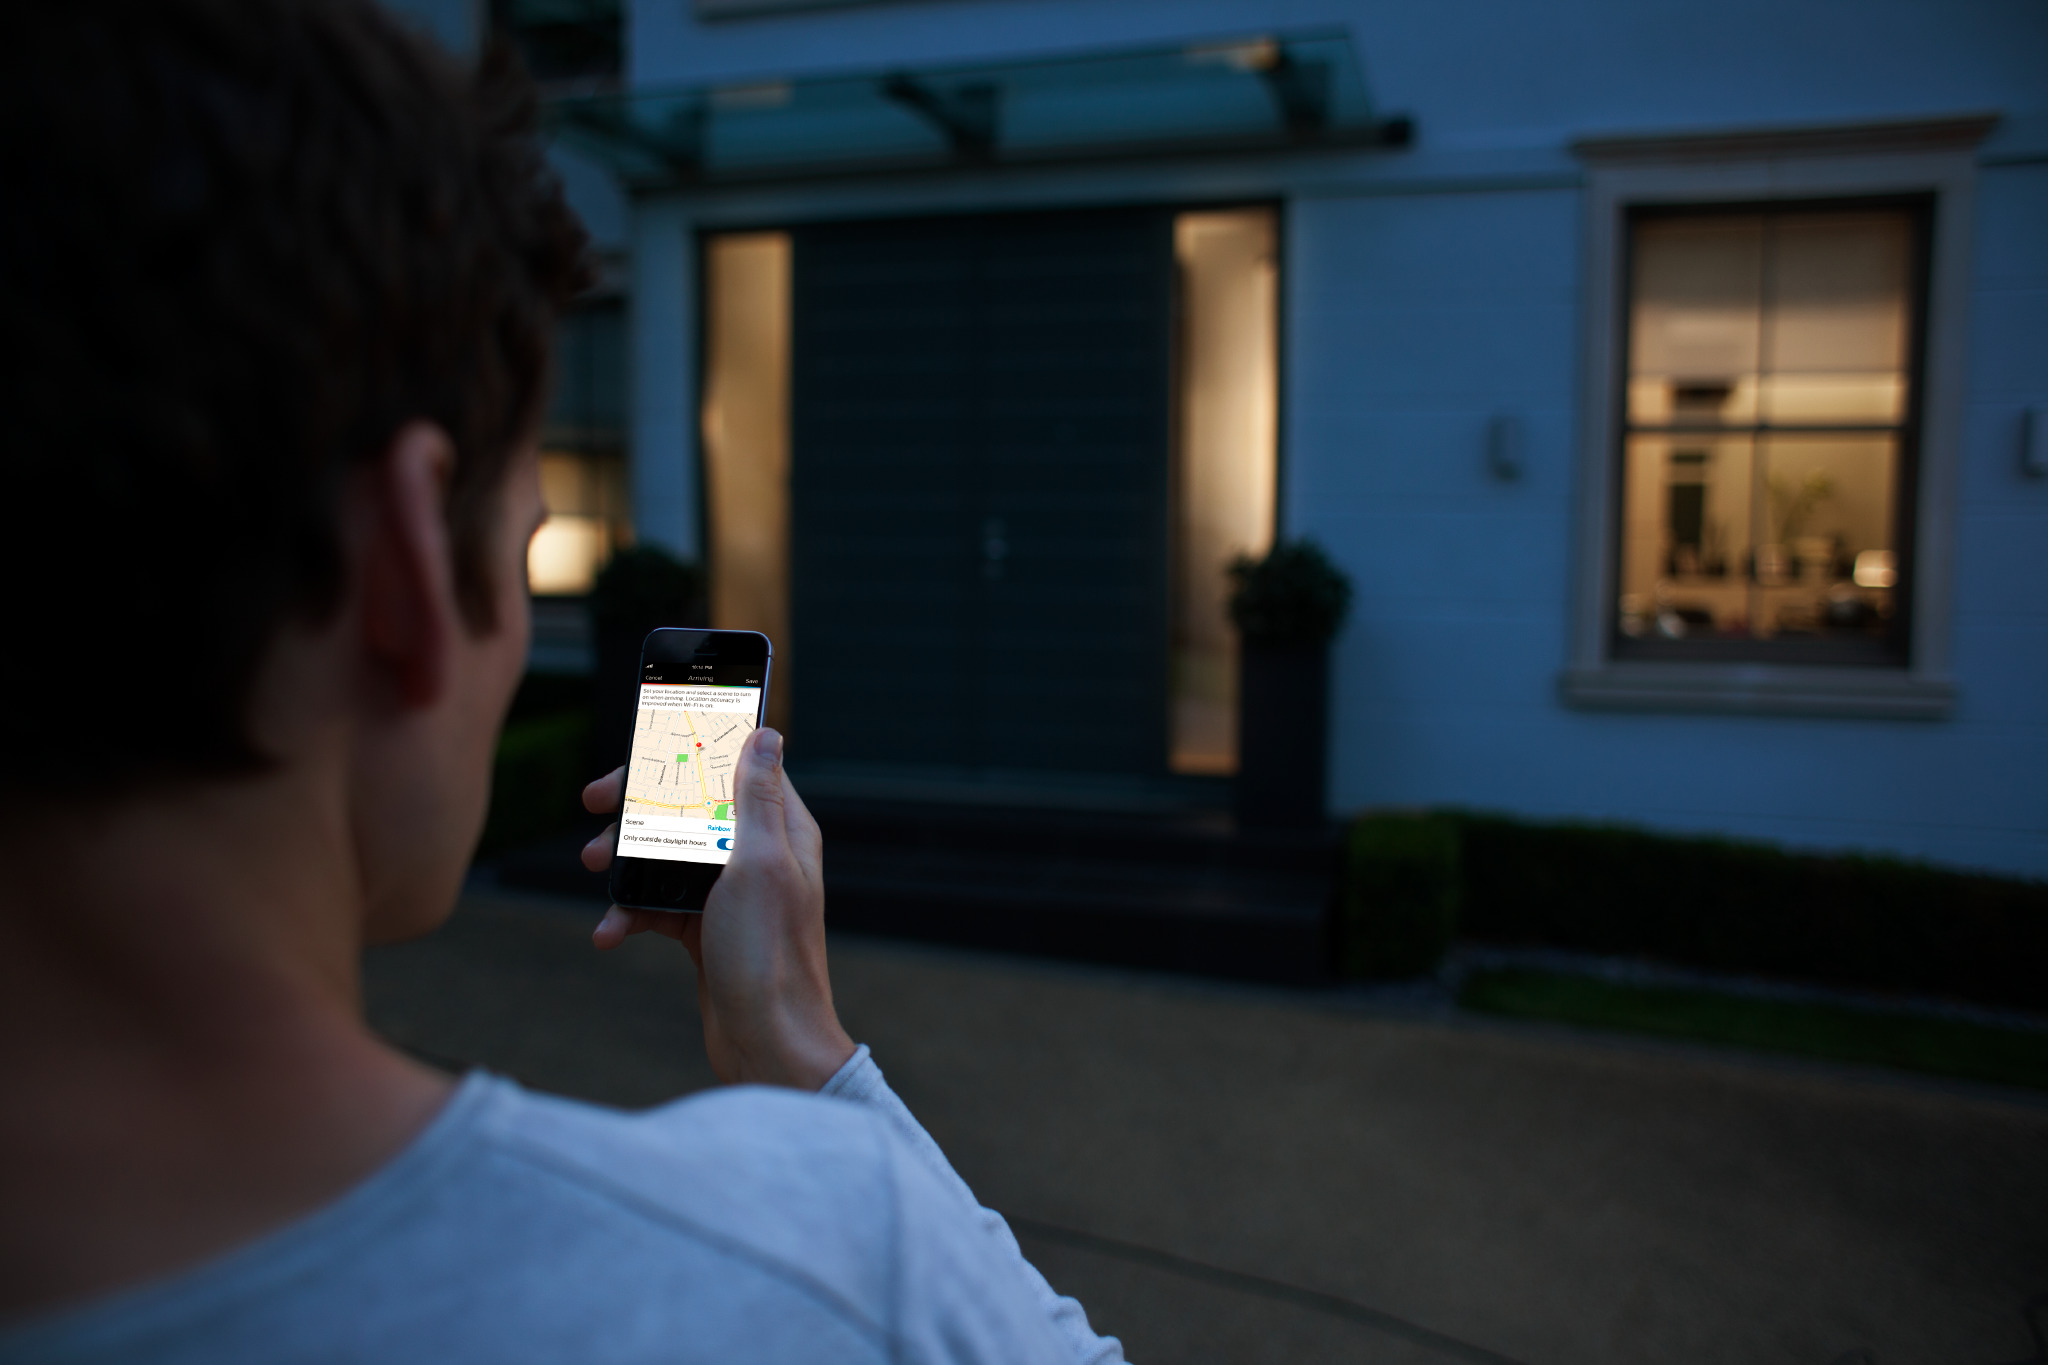 Smart lighting is taking over our homes… and garden